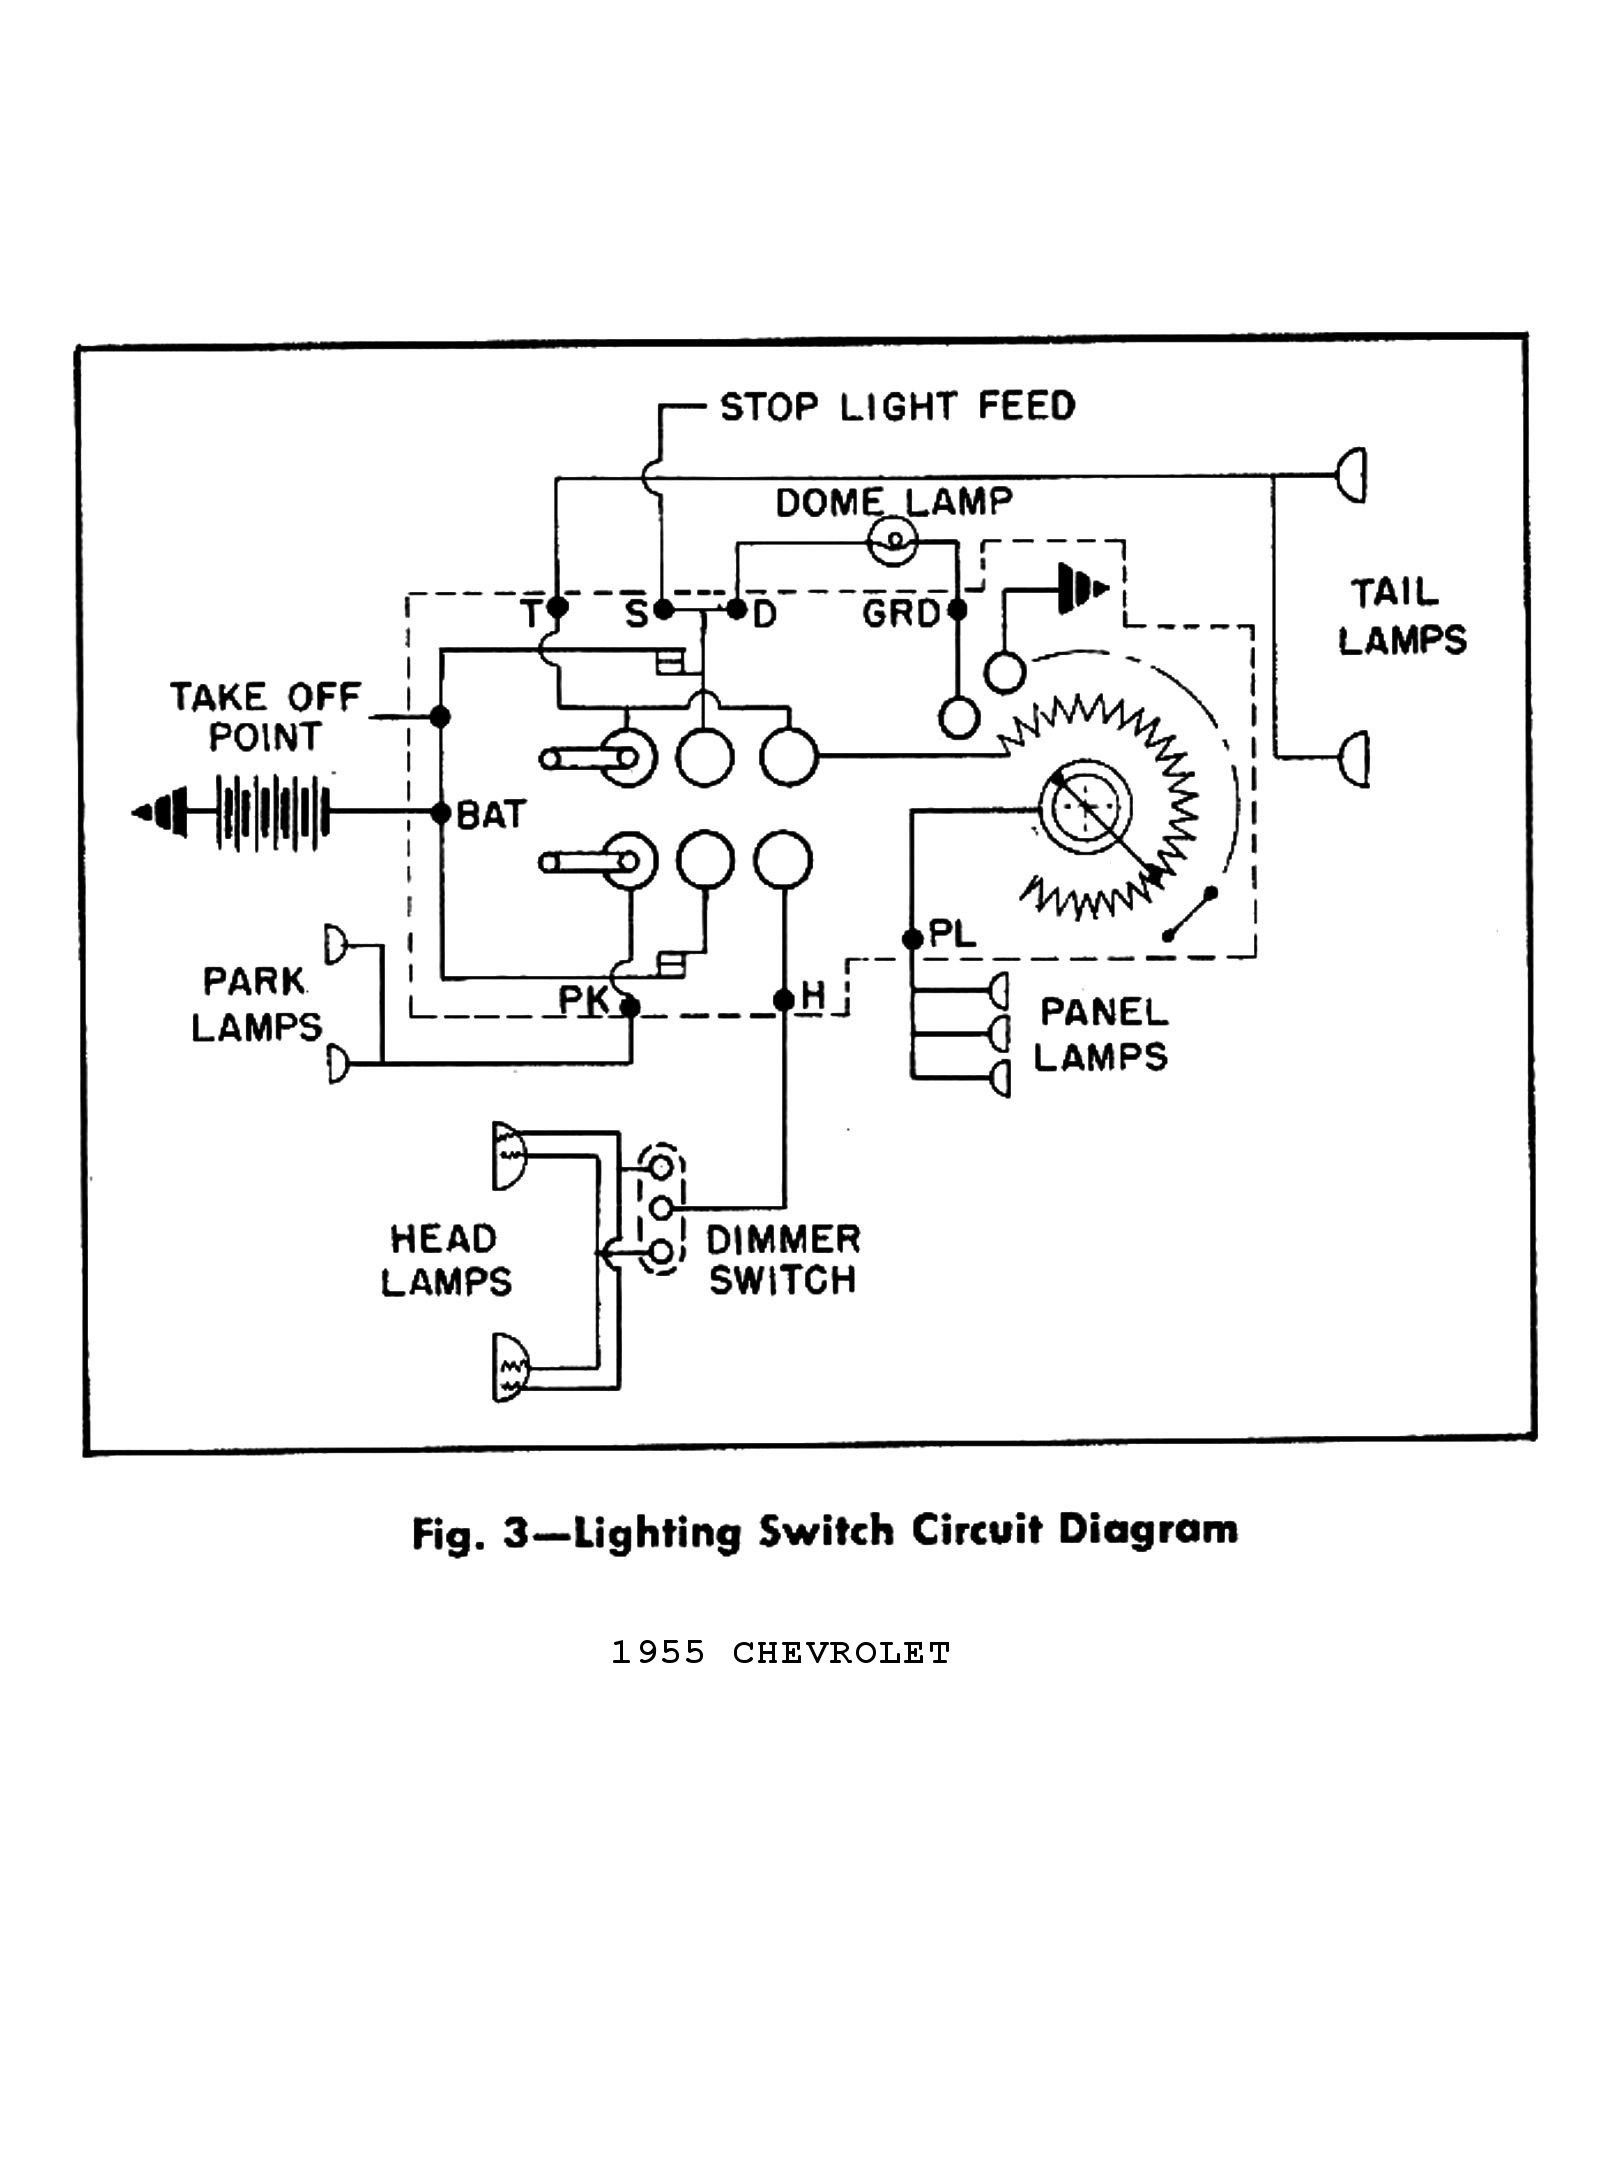 Dimmer Switch Wiring Diagram : dimmer, switch, wiring, diagram, Automotive, Dimmer, Switch, Wiring, Diagram, #diagram, #diagramtemplate, #diagramsample, Jetta, Motor, Ford,, Electrica